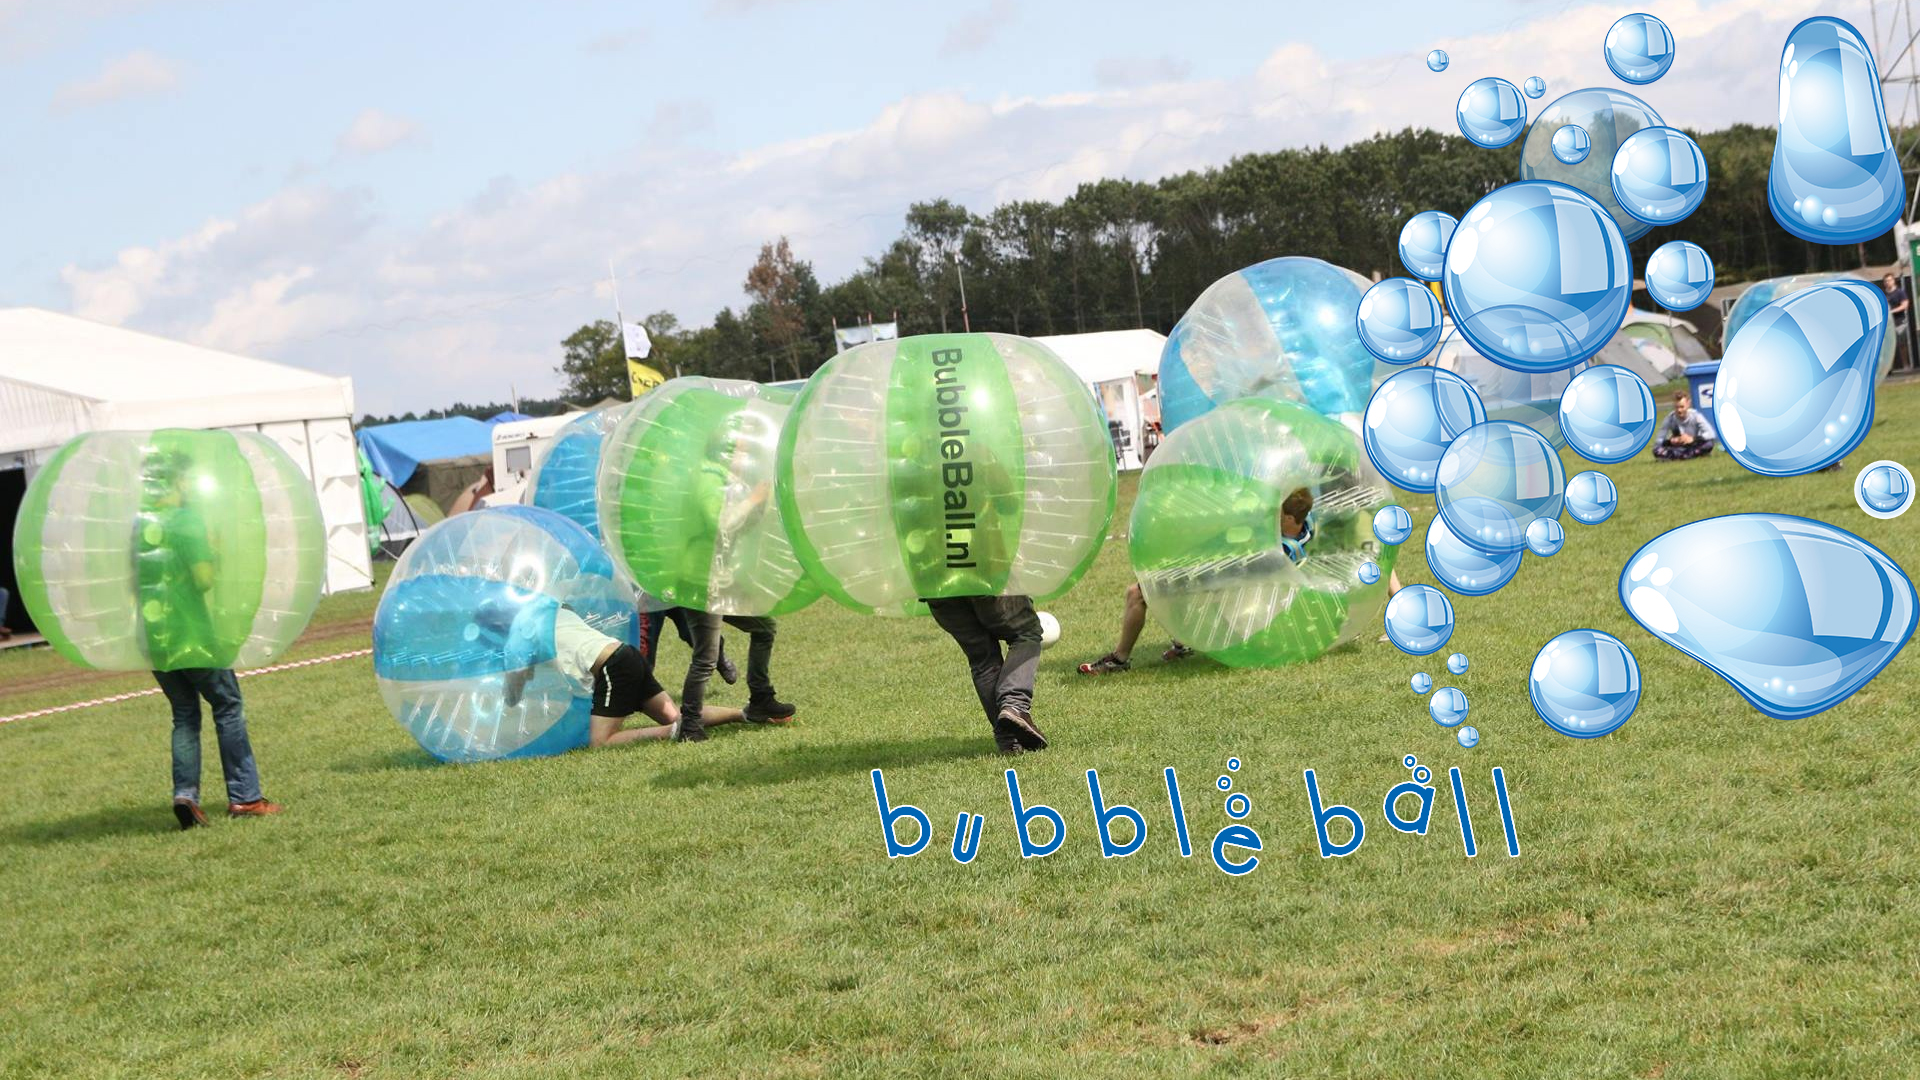 20:00 - Bubble Ball